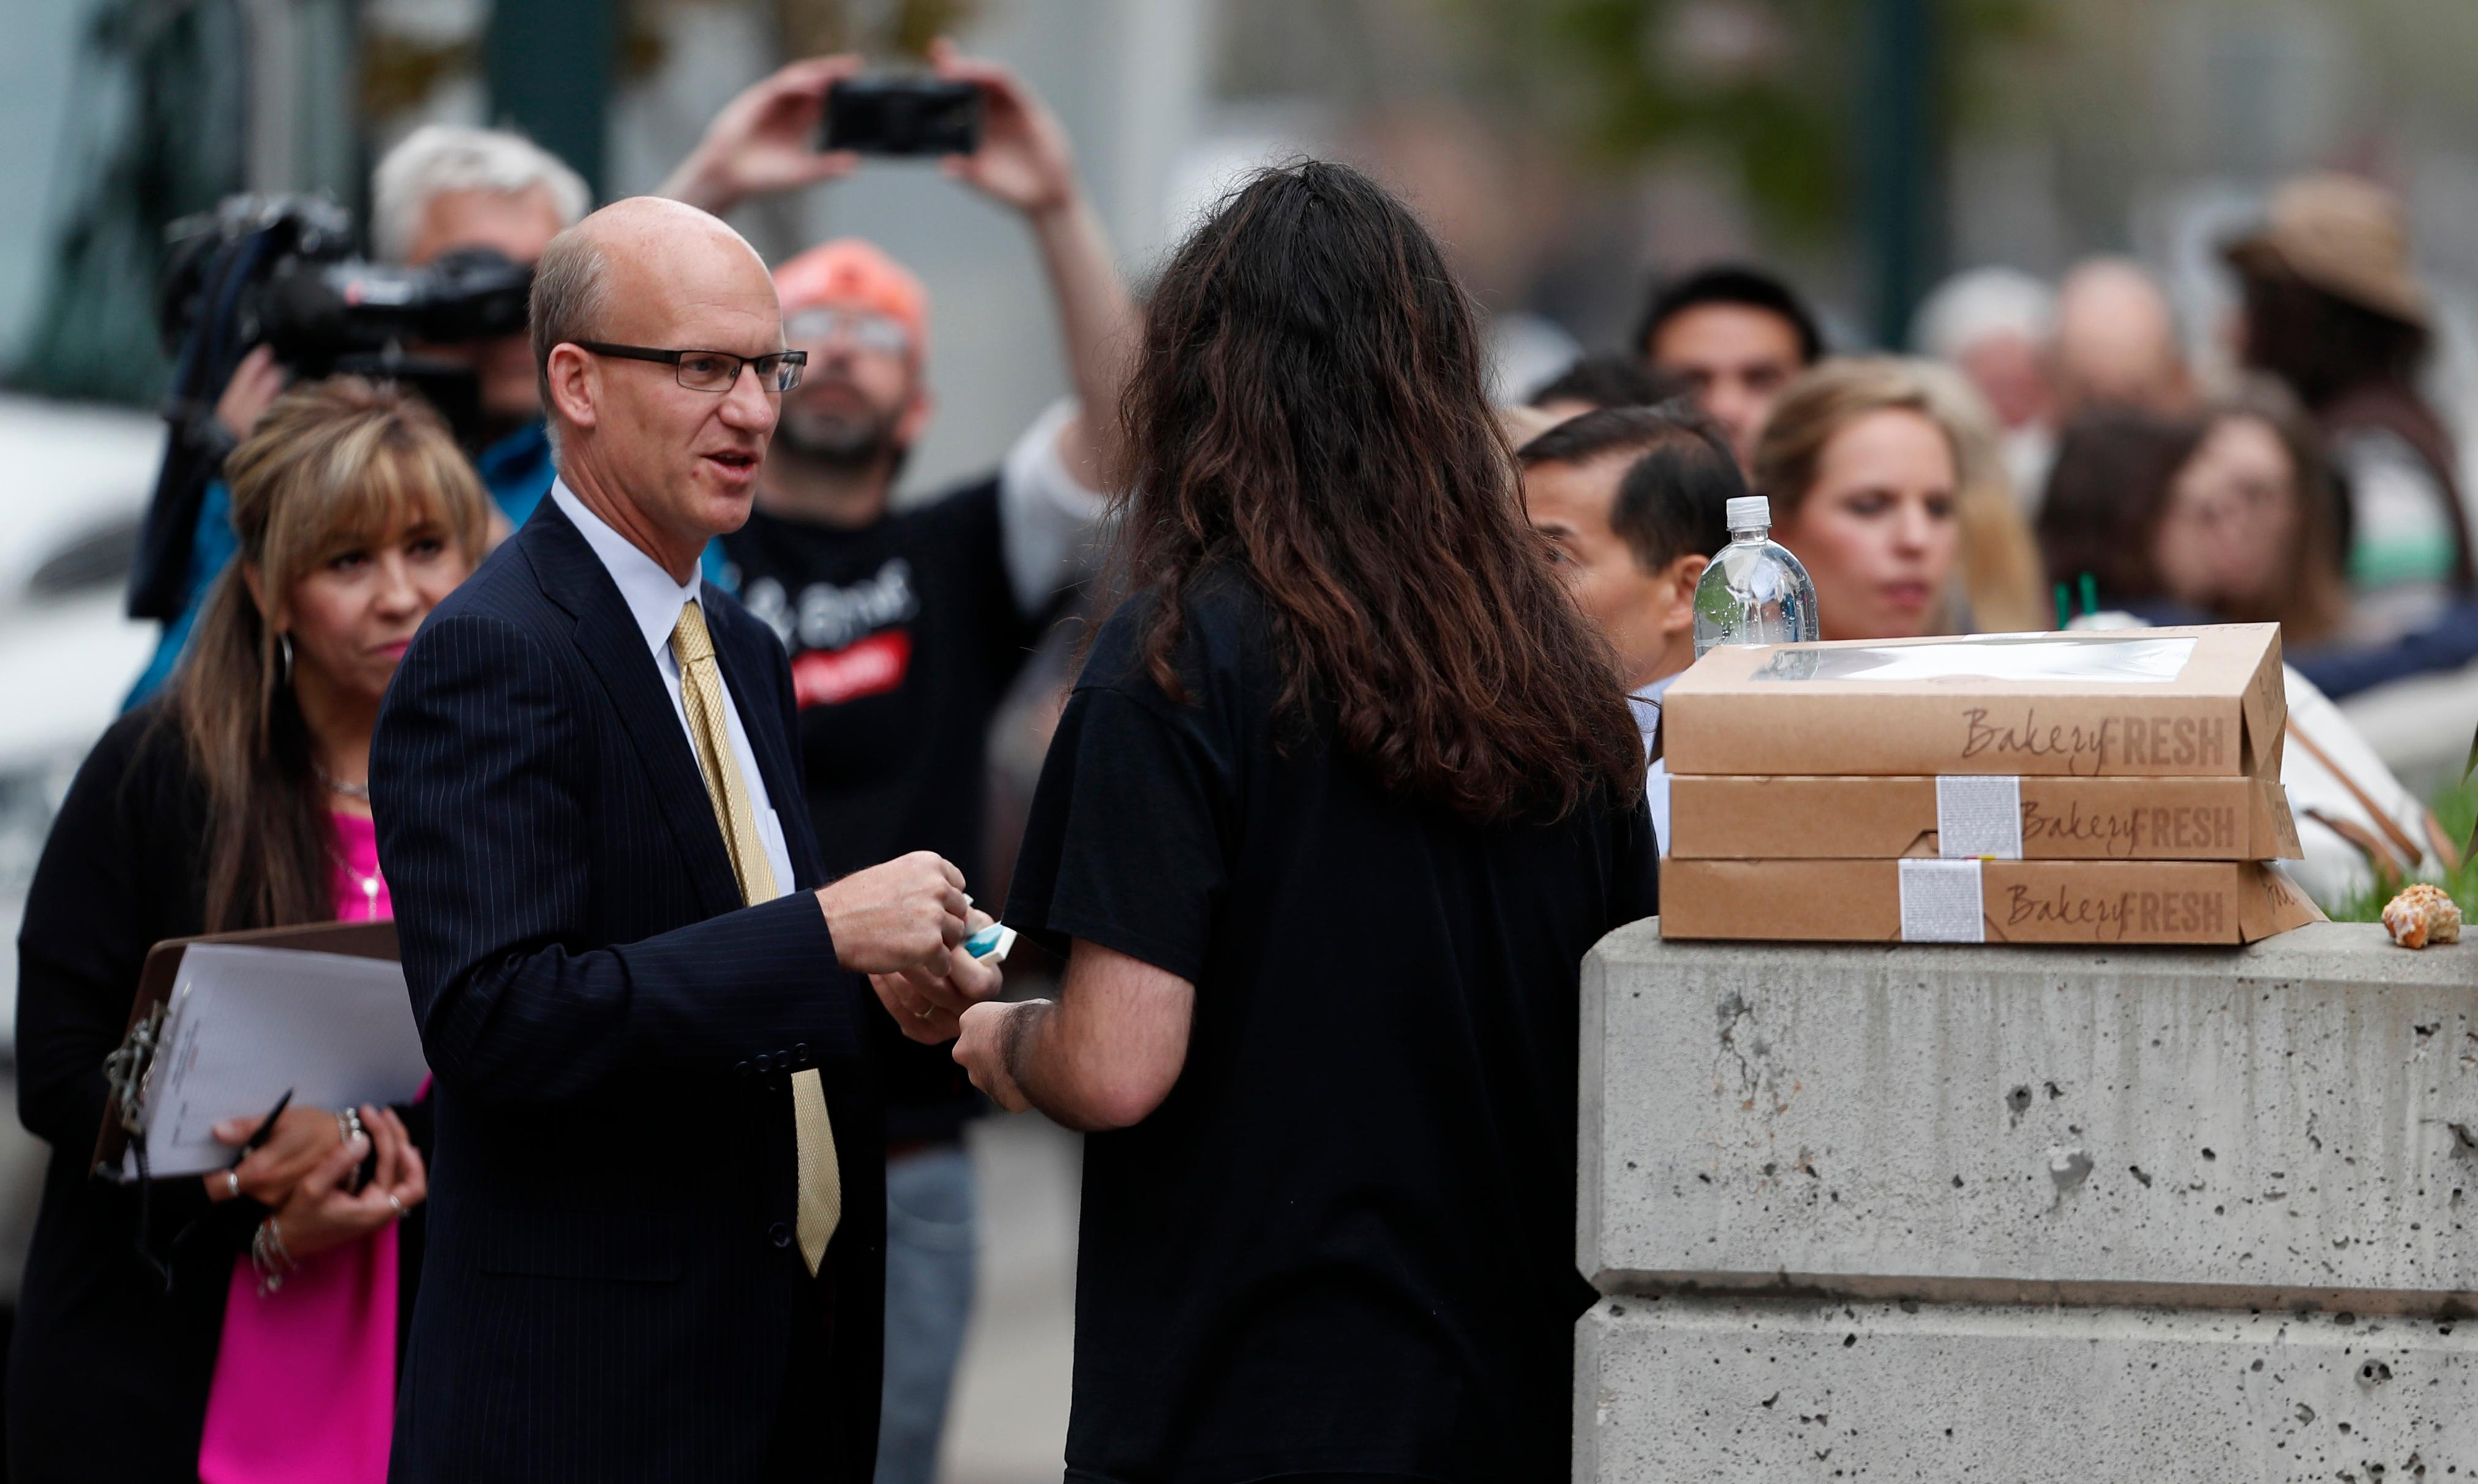 A court officer hands out passes to the public for the morning session in the civil trial for pop singer Taylor Swift, Friday, Aug. 11, 2017, in Denver. Radio station DJ David Mueller sued Swift after her team reported she was groped by Mueller,  to his bosses at a country music station. He is seeking up to $3 million, saying the allegation cost him his job and reputation. Swift countersued Mueller, claiming sexual assault. She is seeking a symbolic $1.   (AP Photo/David Zalubowski)